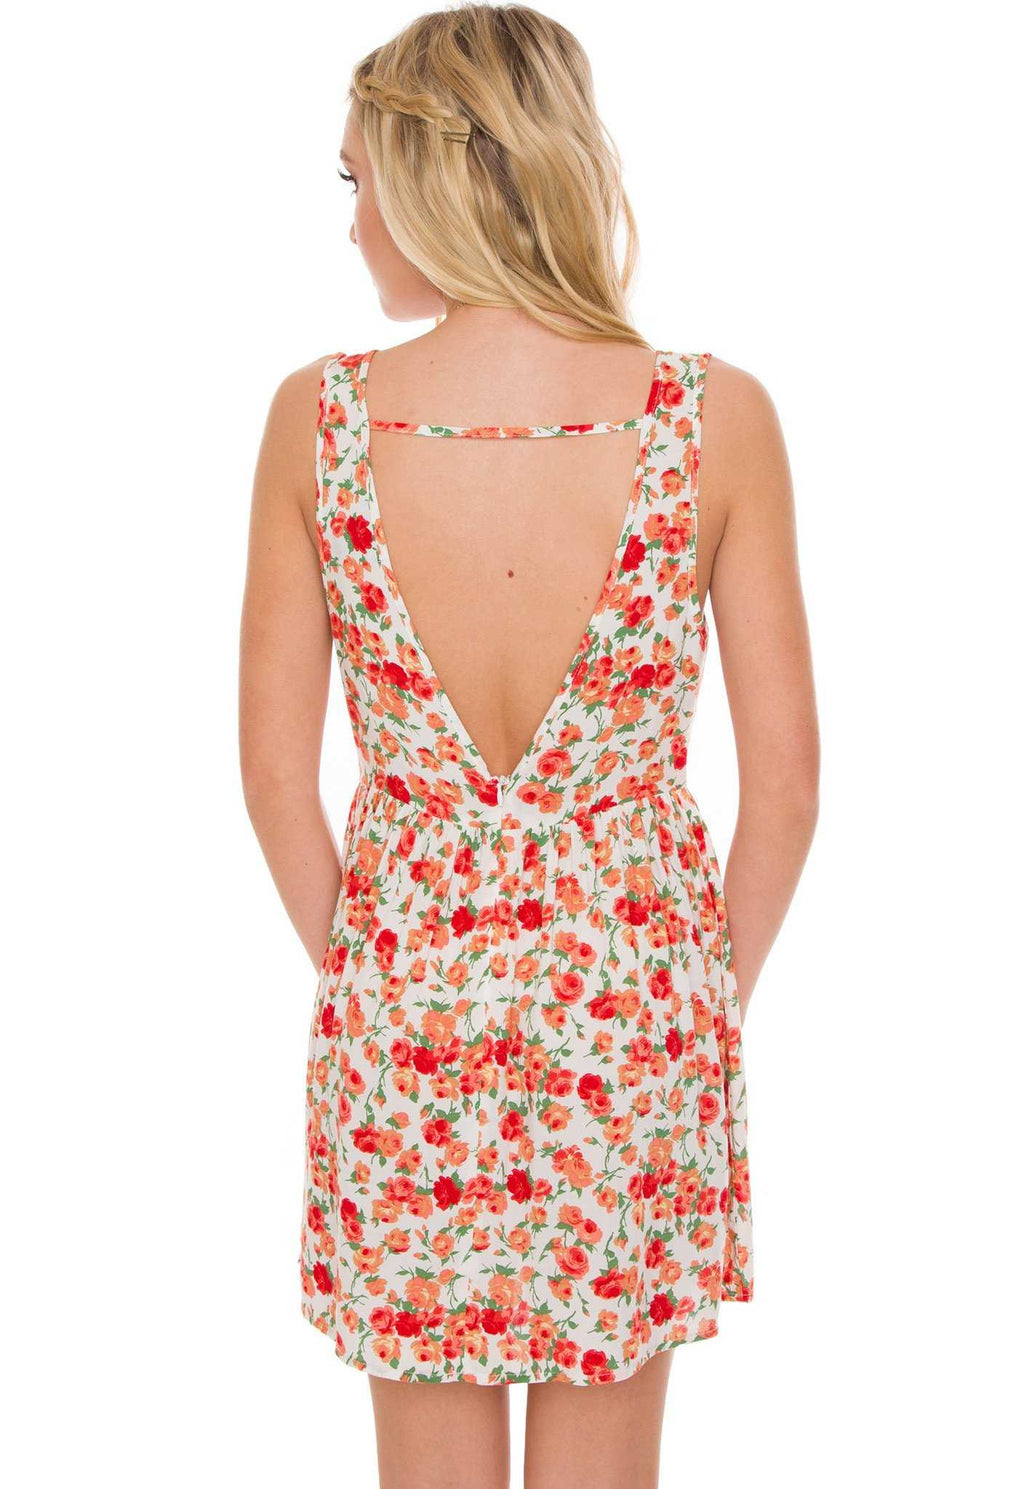 Dresses - Vera Floral Dress - White